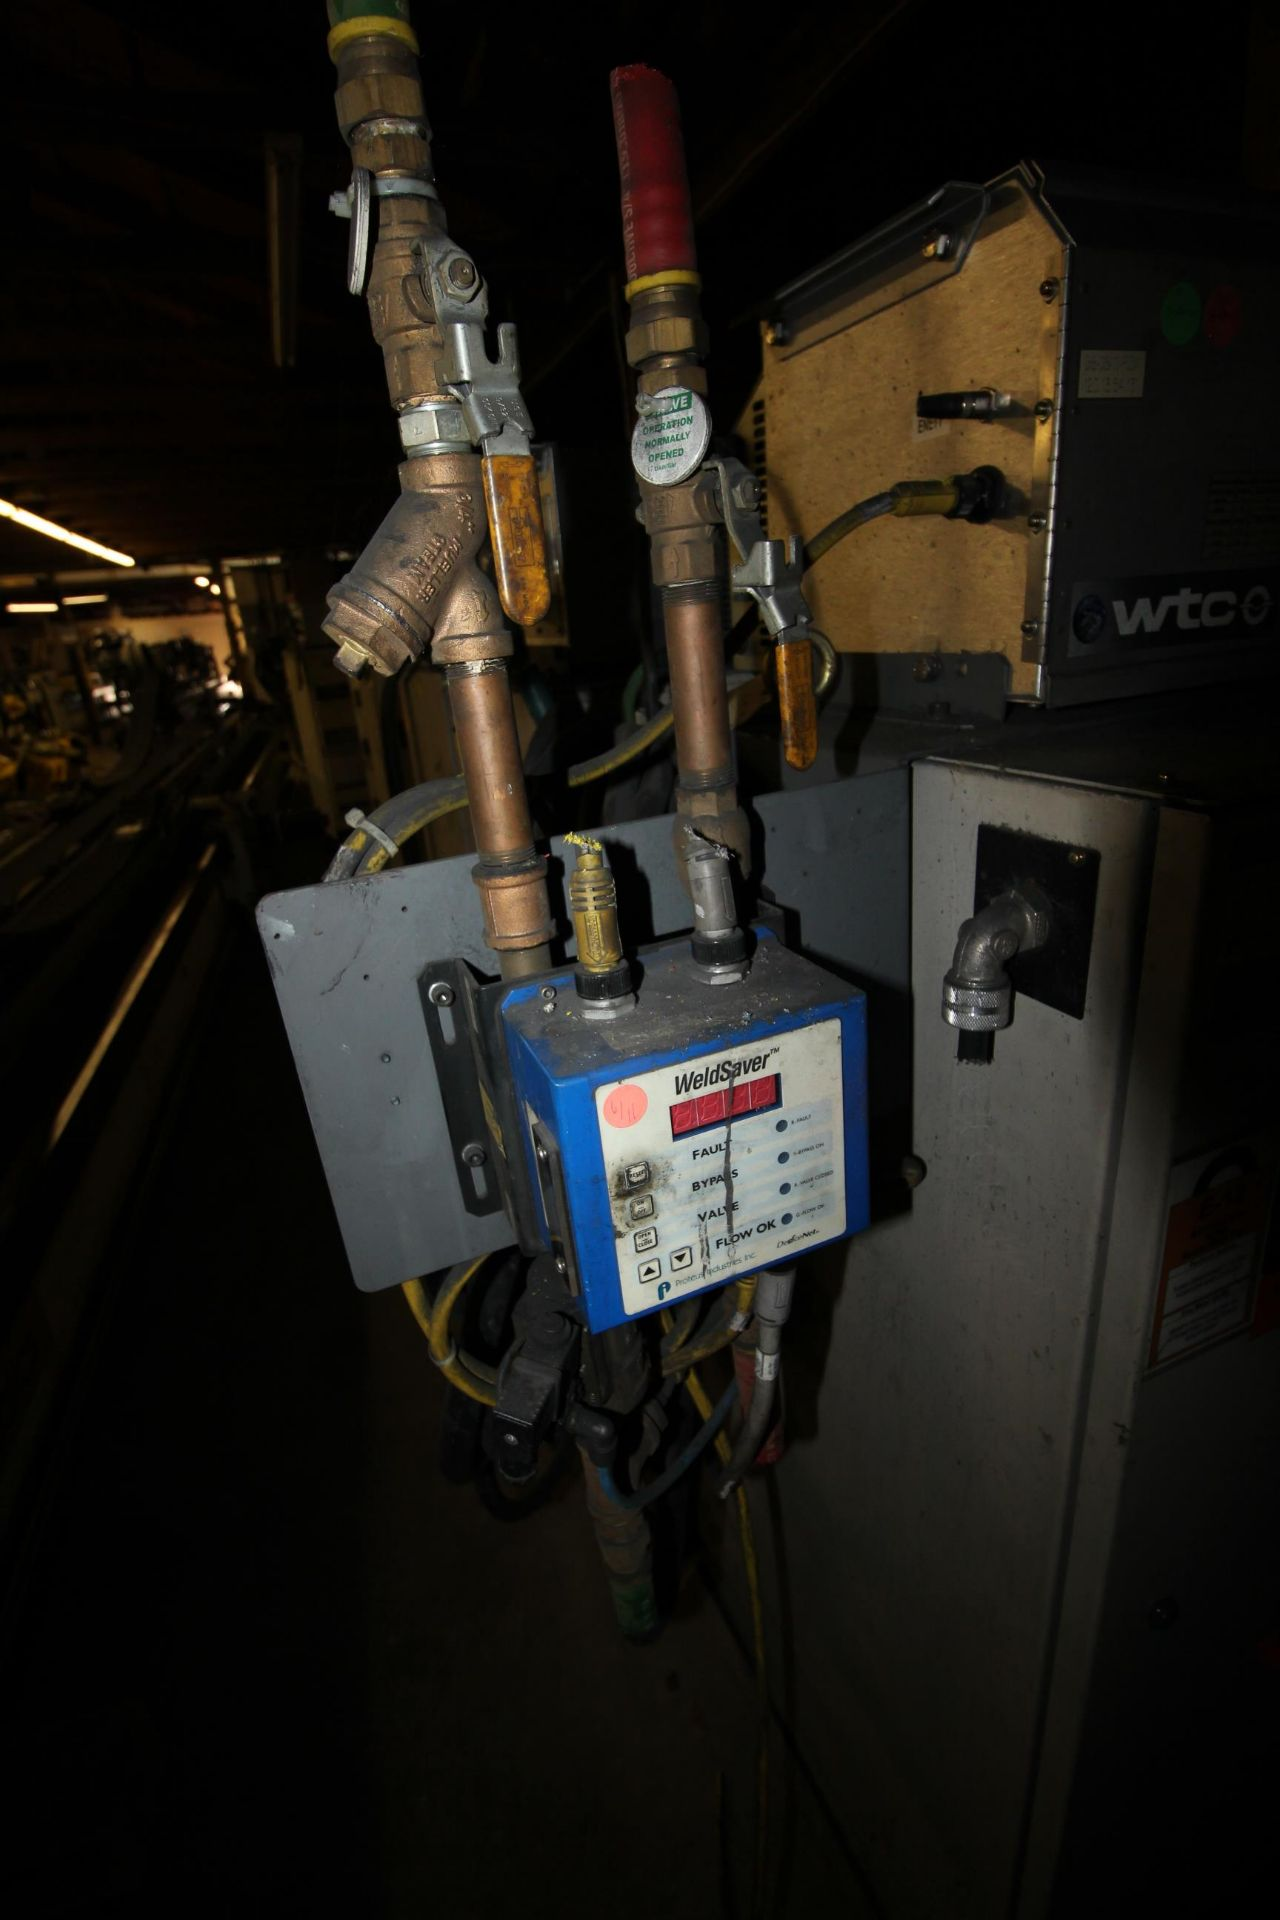 MOTOMAN ROBOT ES200N, NX100 CONTROL, SN S5M255-1-2, YEAR 2006, CABLES AND TEACH PENDANT - Image 10 of 11